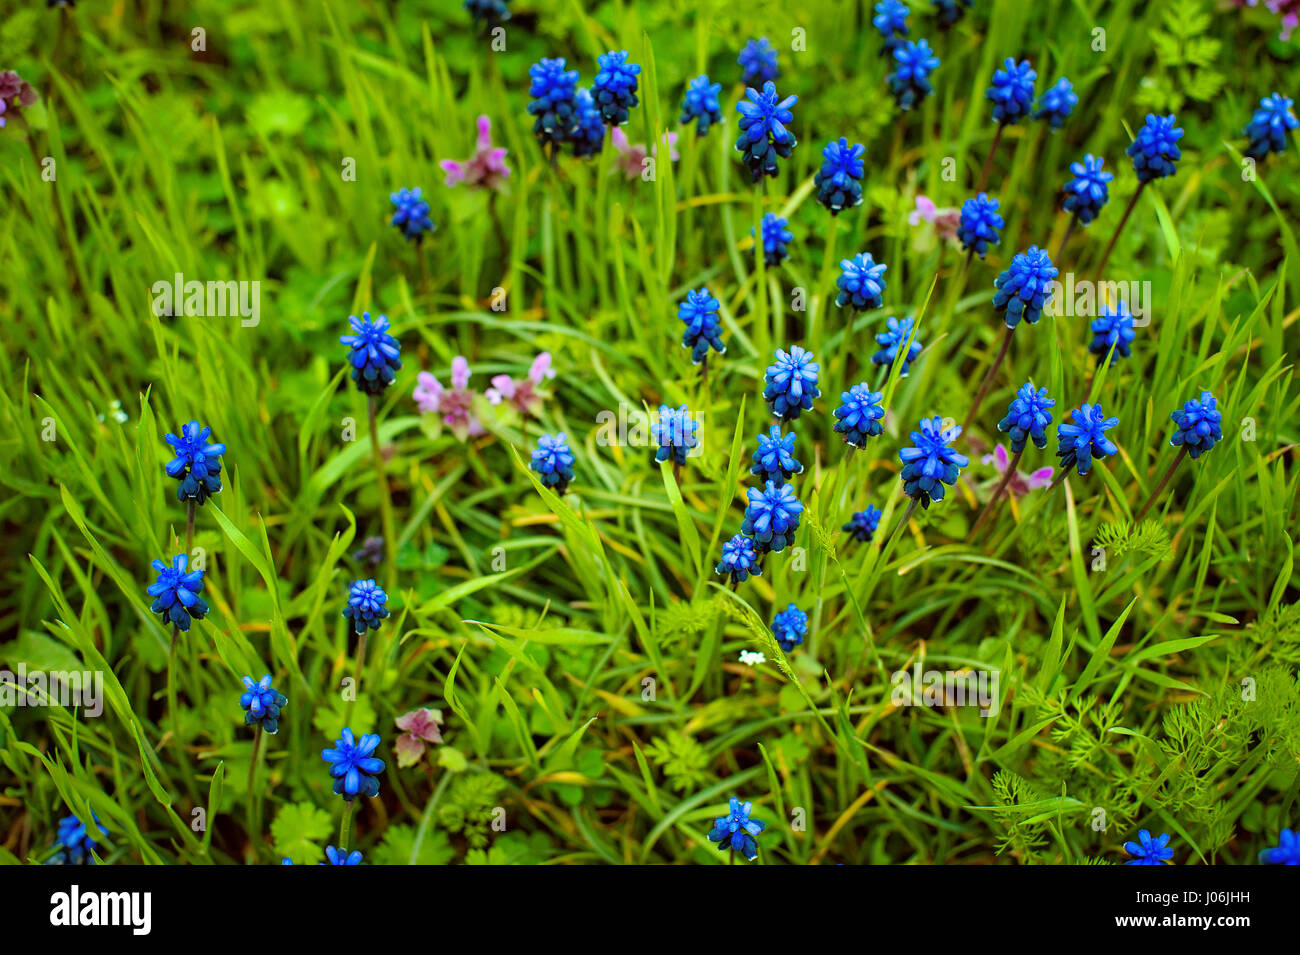 Blue flowers Muscari or murine hyacinth buds and leaves. - Stock Image